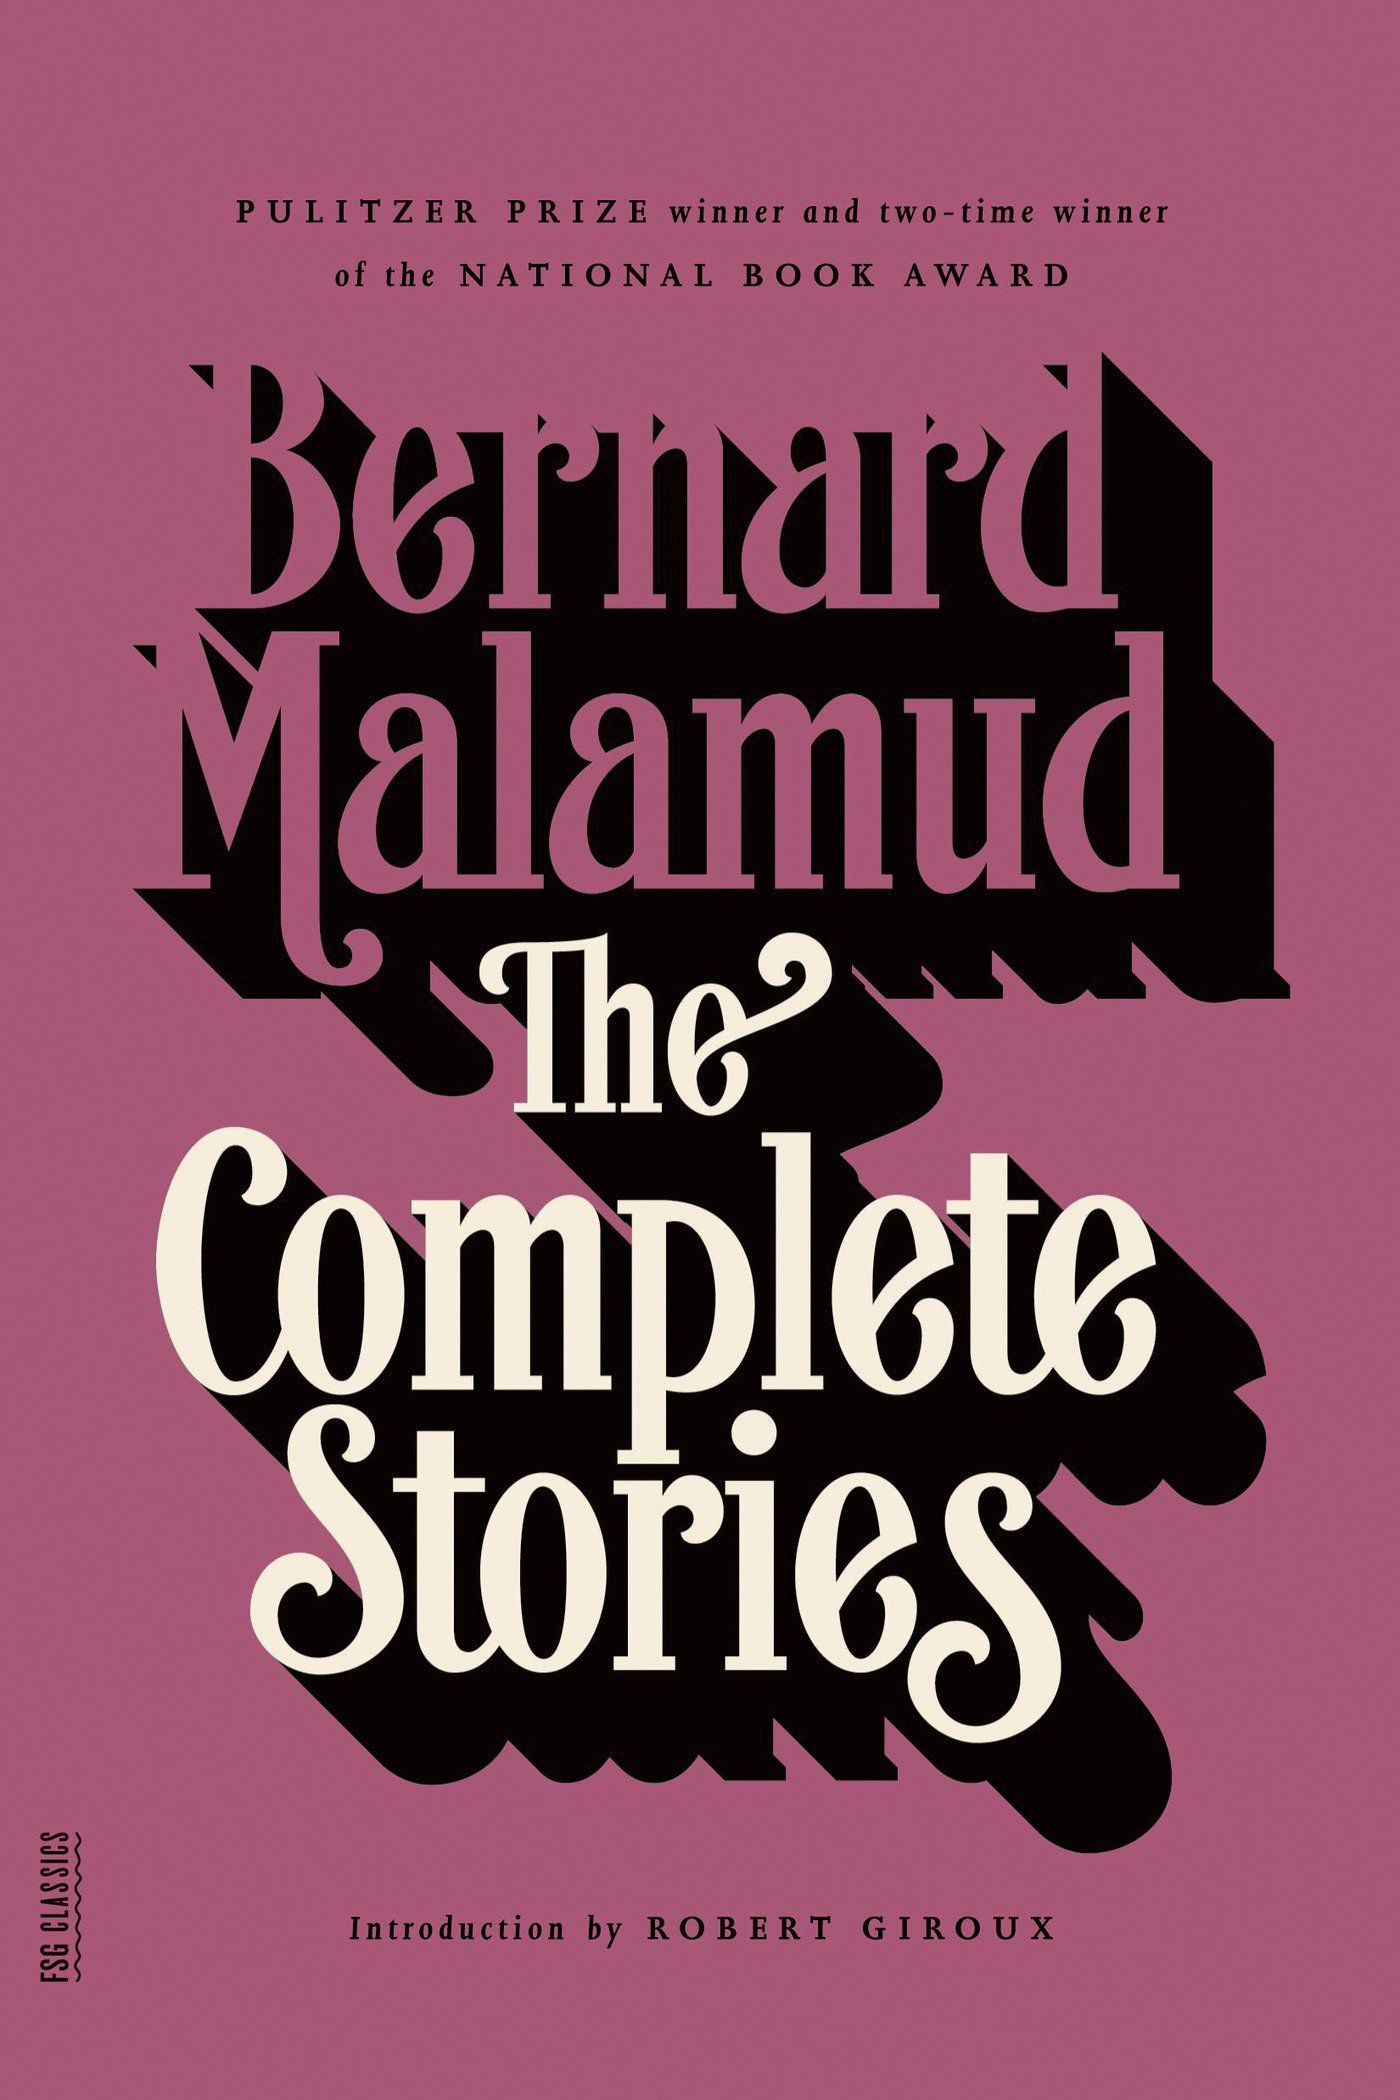 of the best science fiction and fantasy short stories ever vox joe s first pick the jewbird by bernard malamud